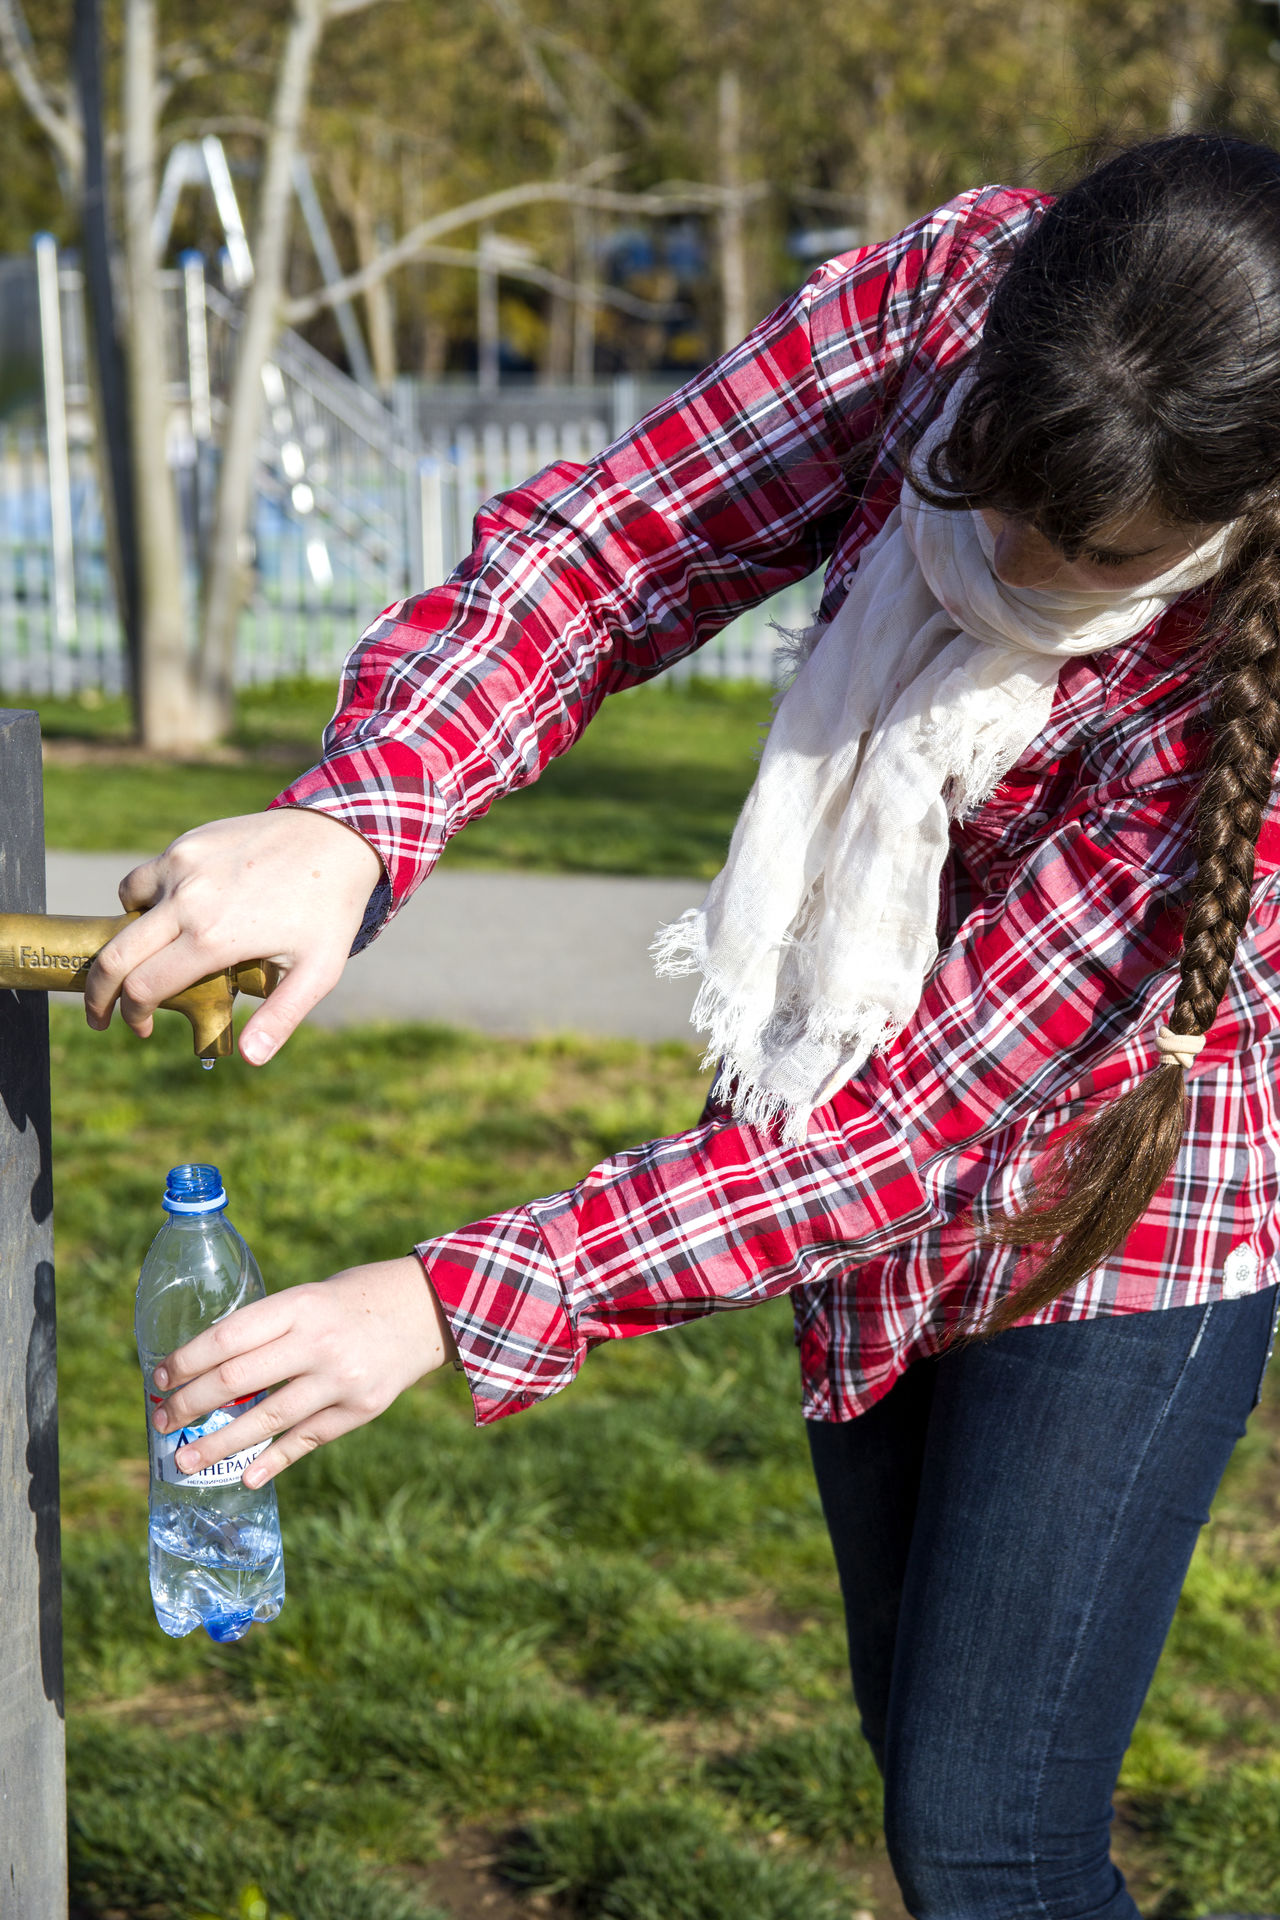 Bottle Drink Drinking Water Fountain Freshness Girl Grass Holding Outdoors Red Rural Scene Standing Water Young Adult